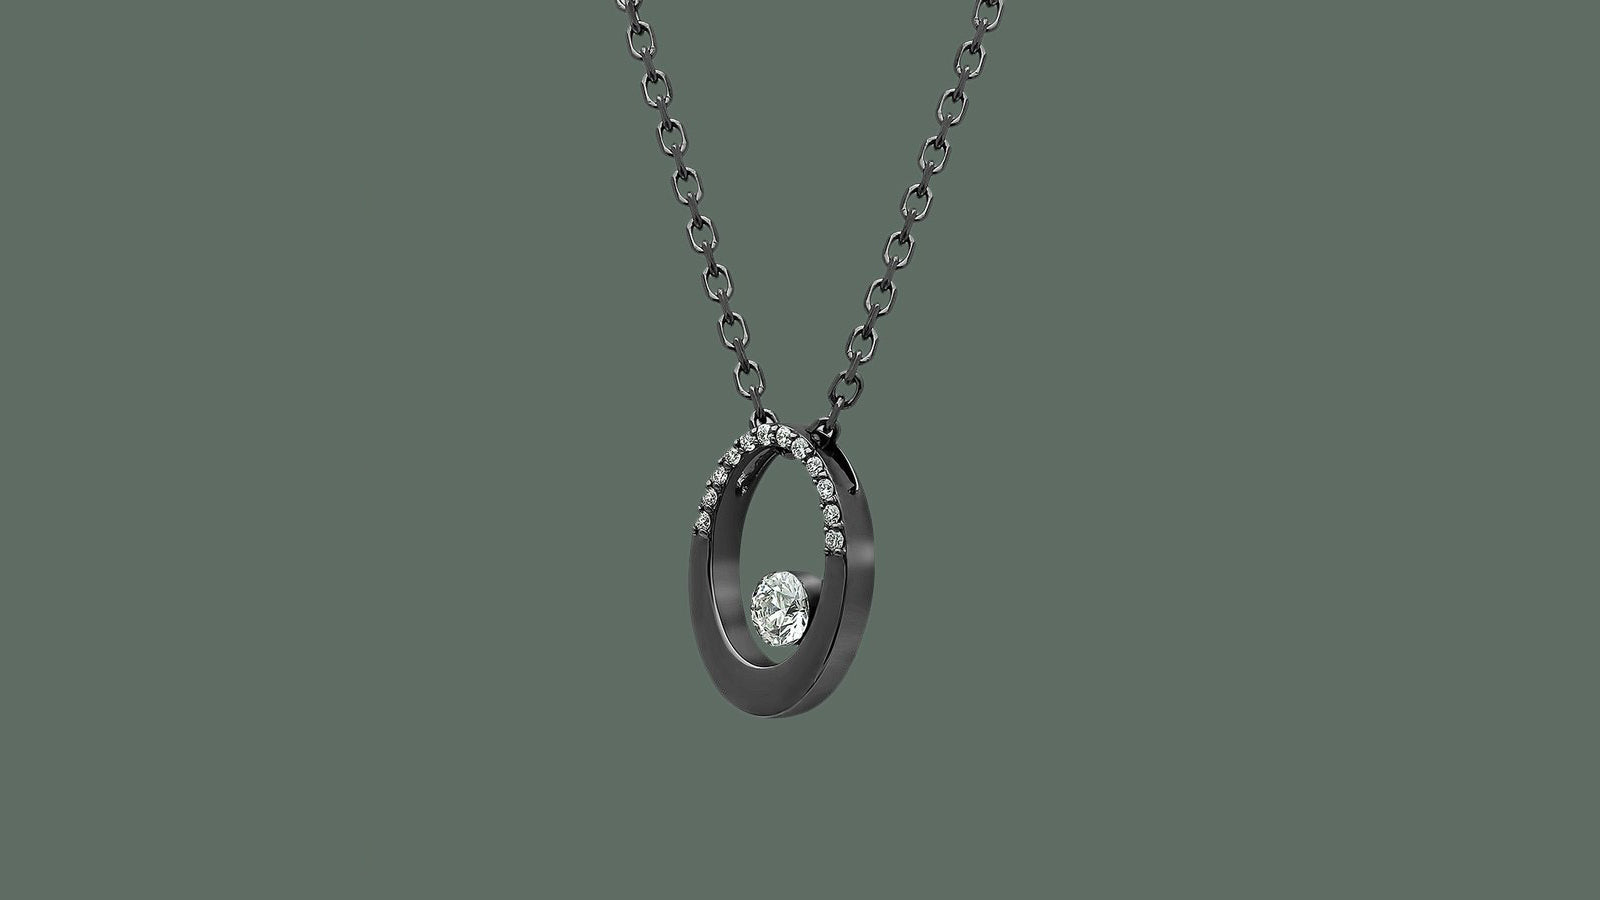 The Oval Floating Diamond Necklace